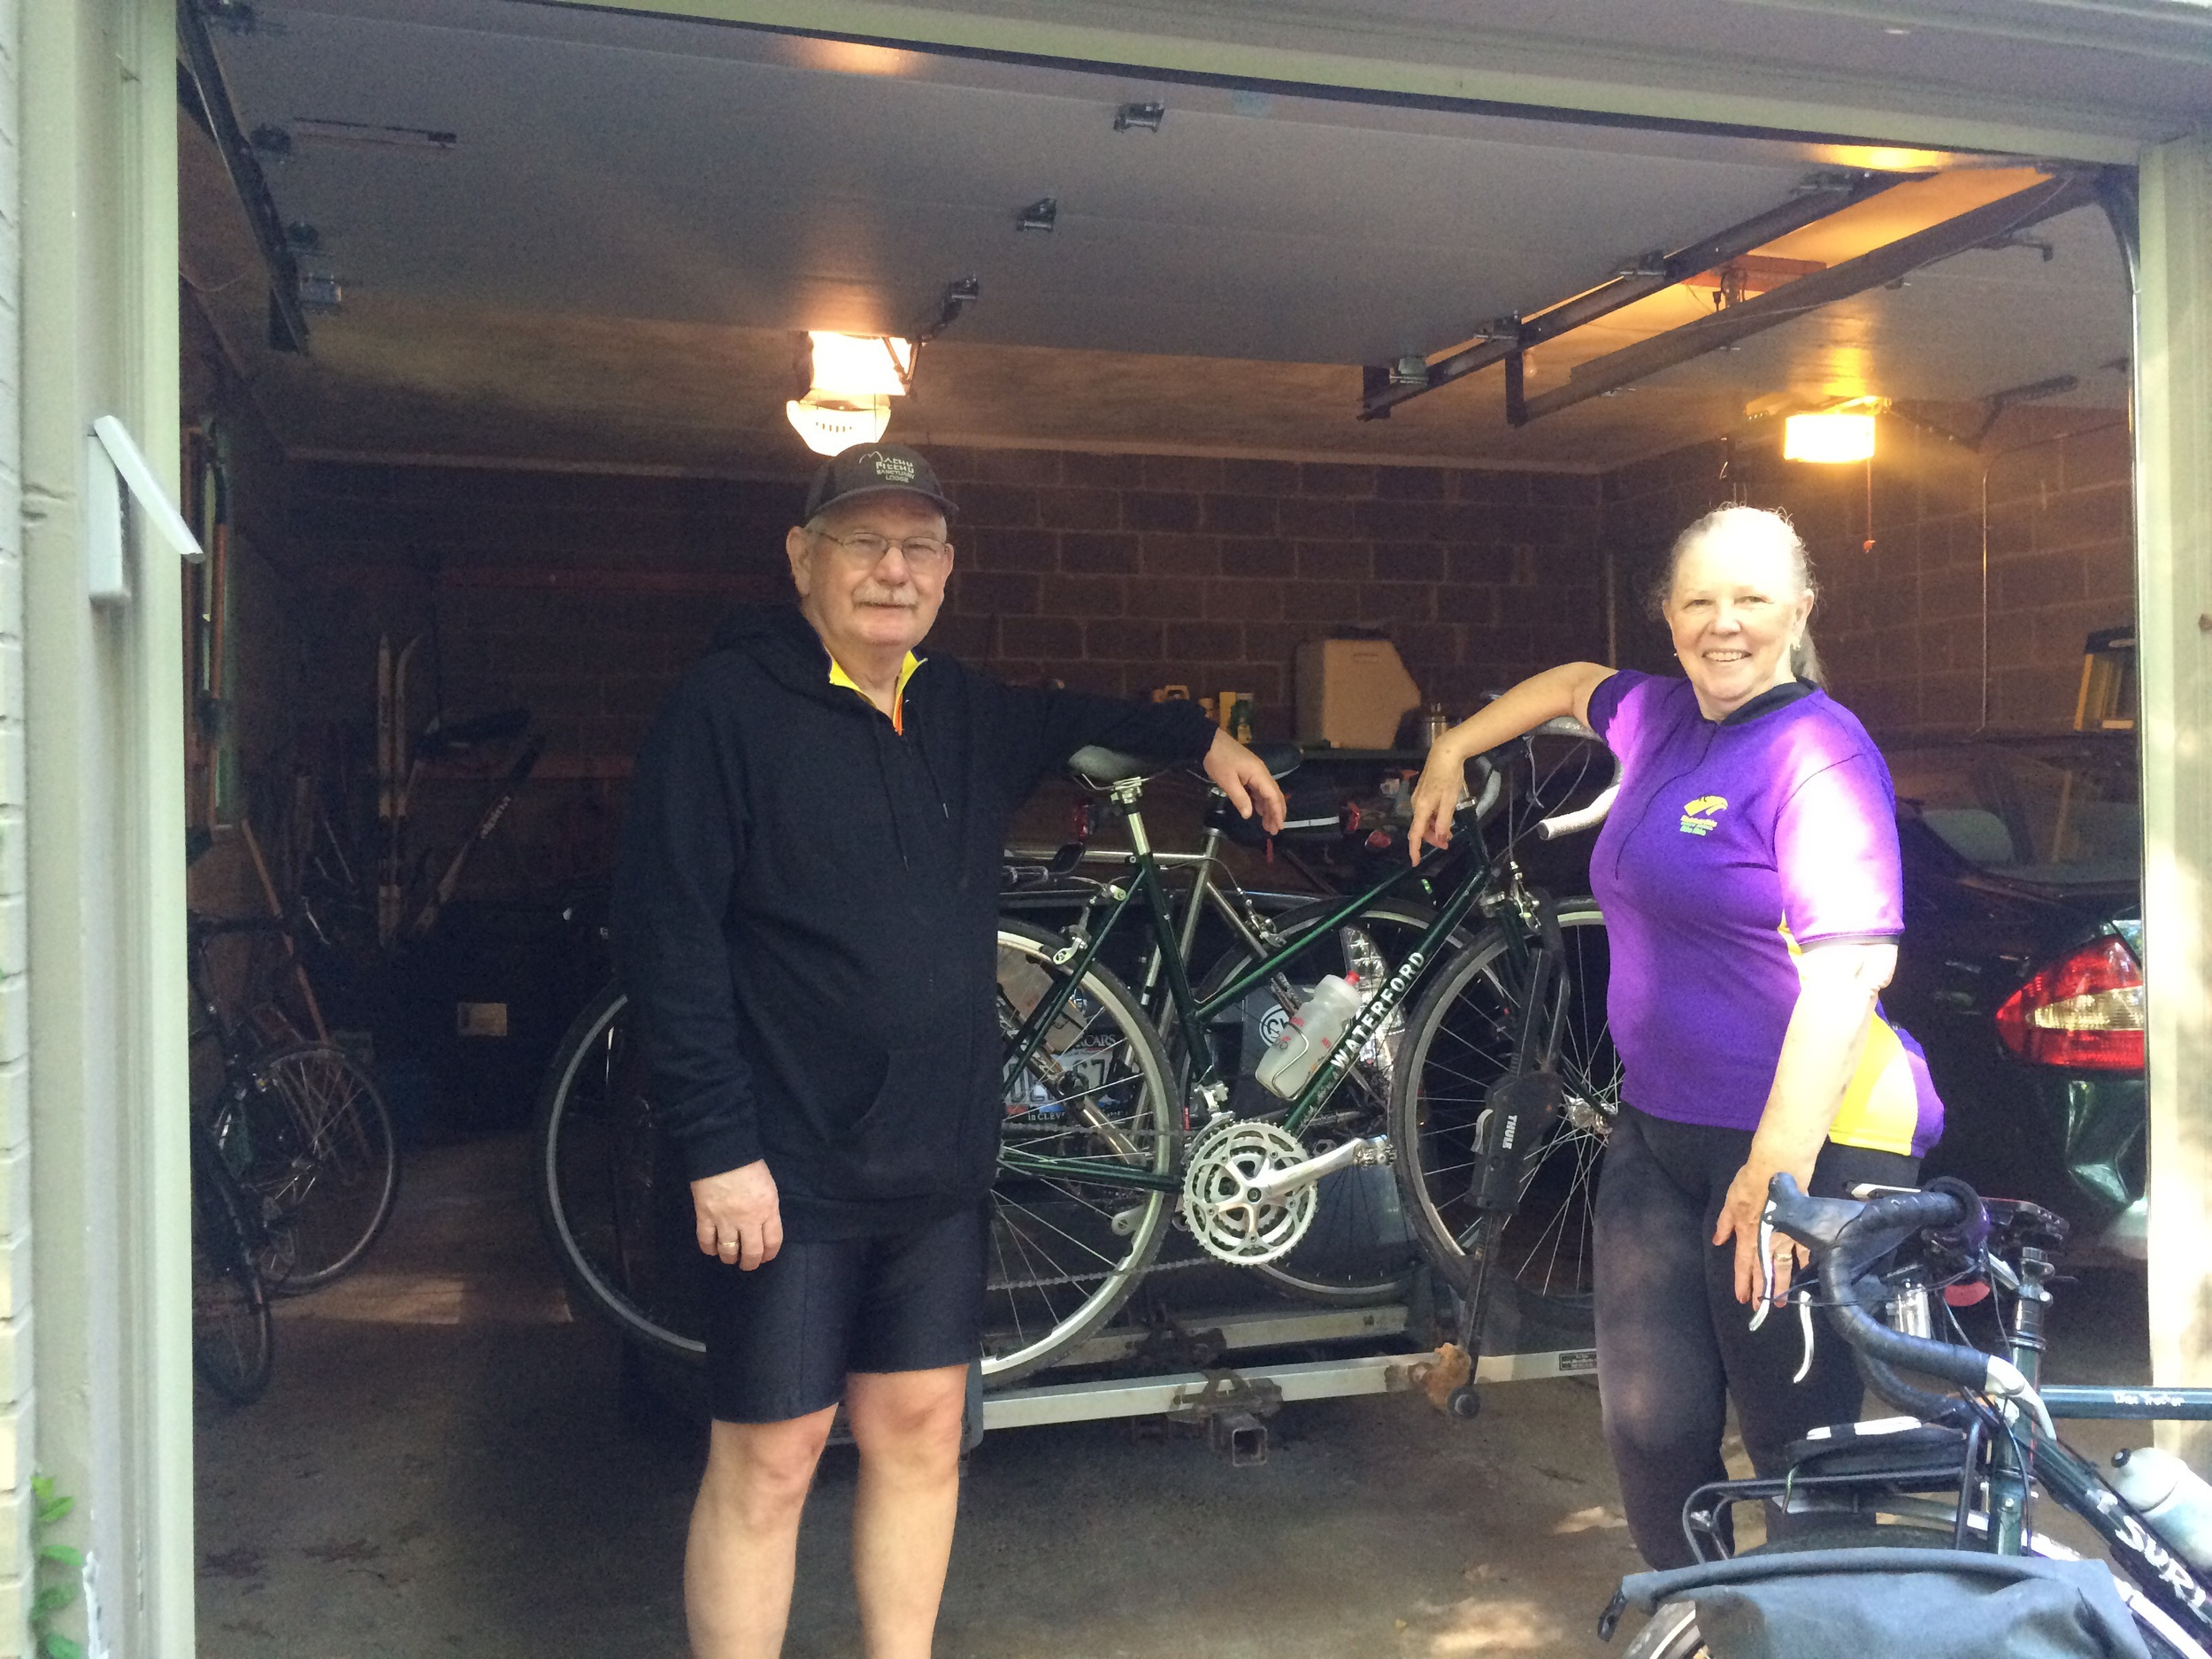 Gary and Marilyn, avid cyclists themselves